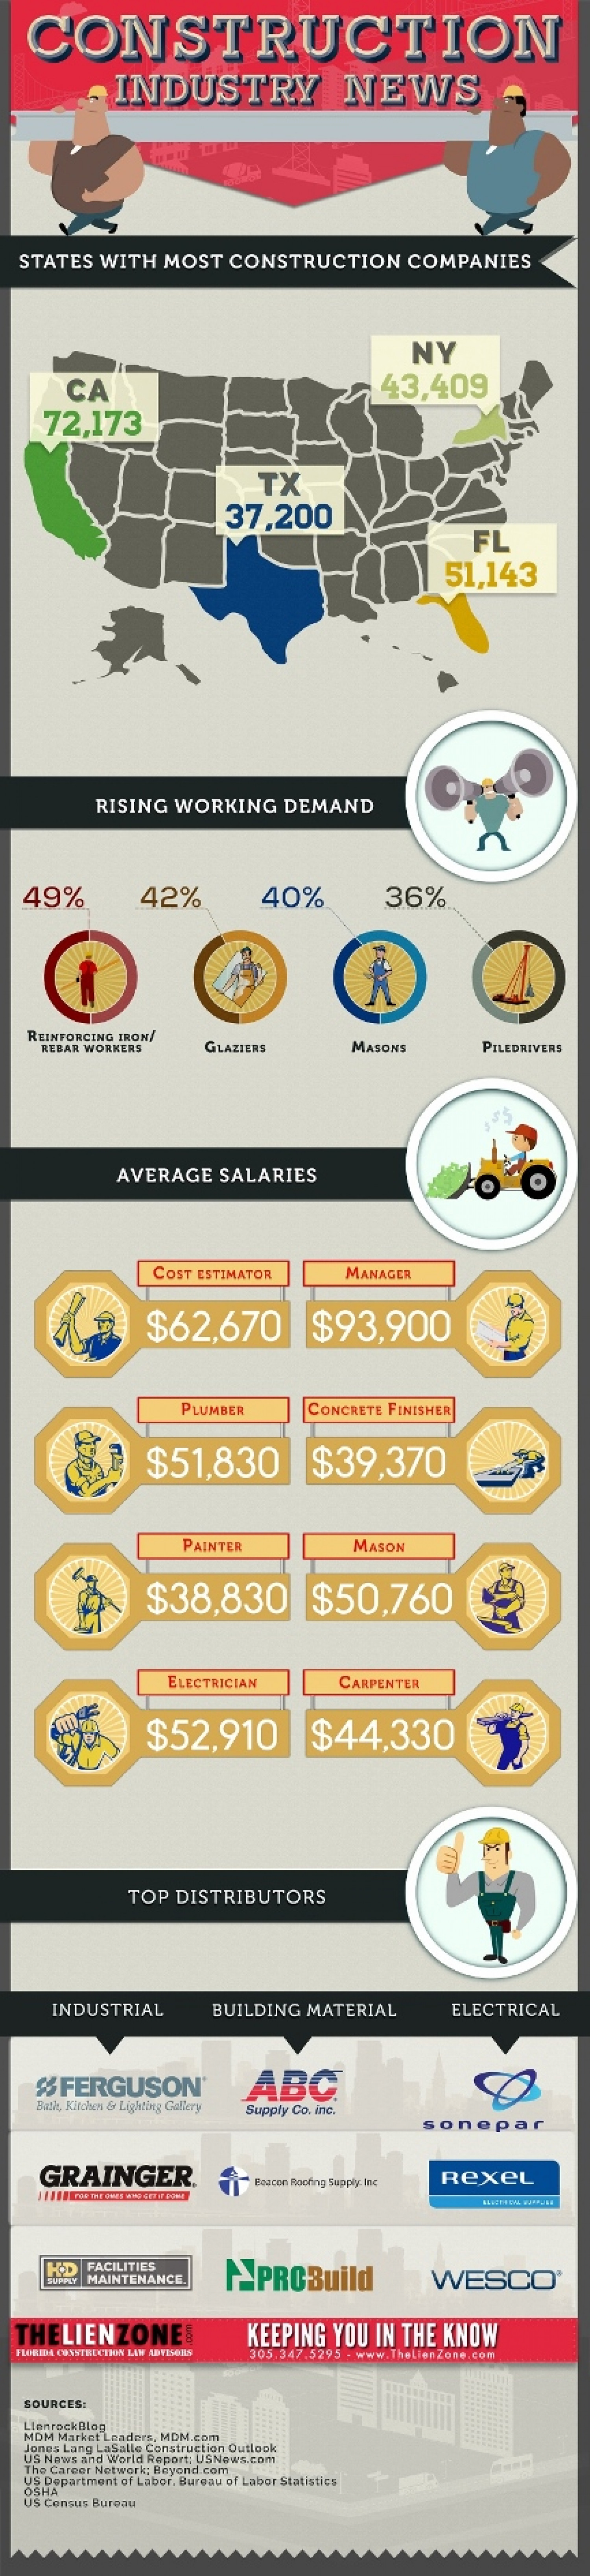 Construction Industry News: States with Most Construction Companies Infographic